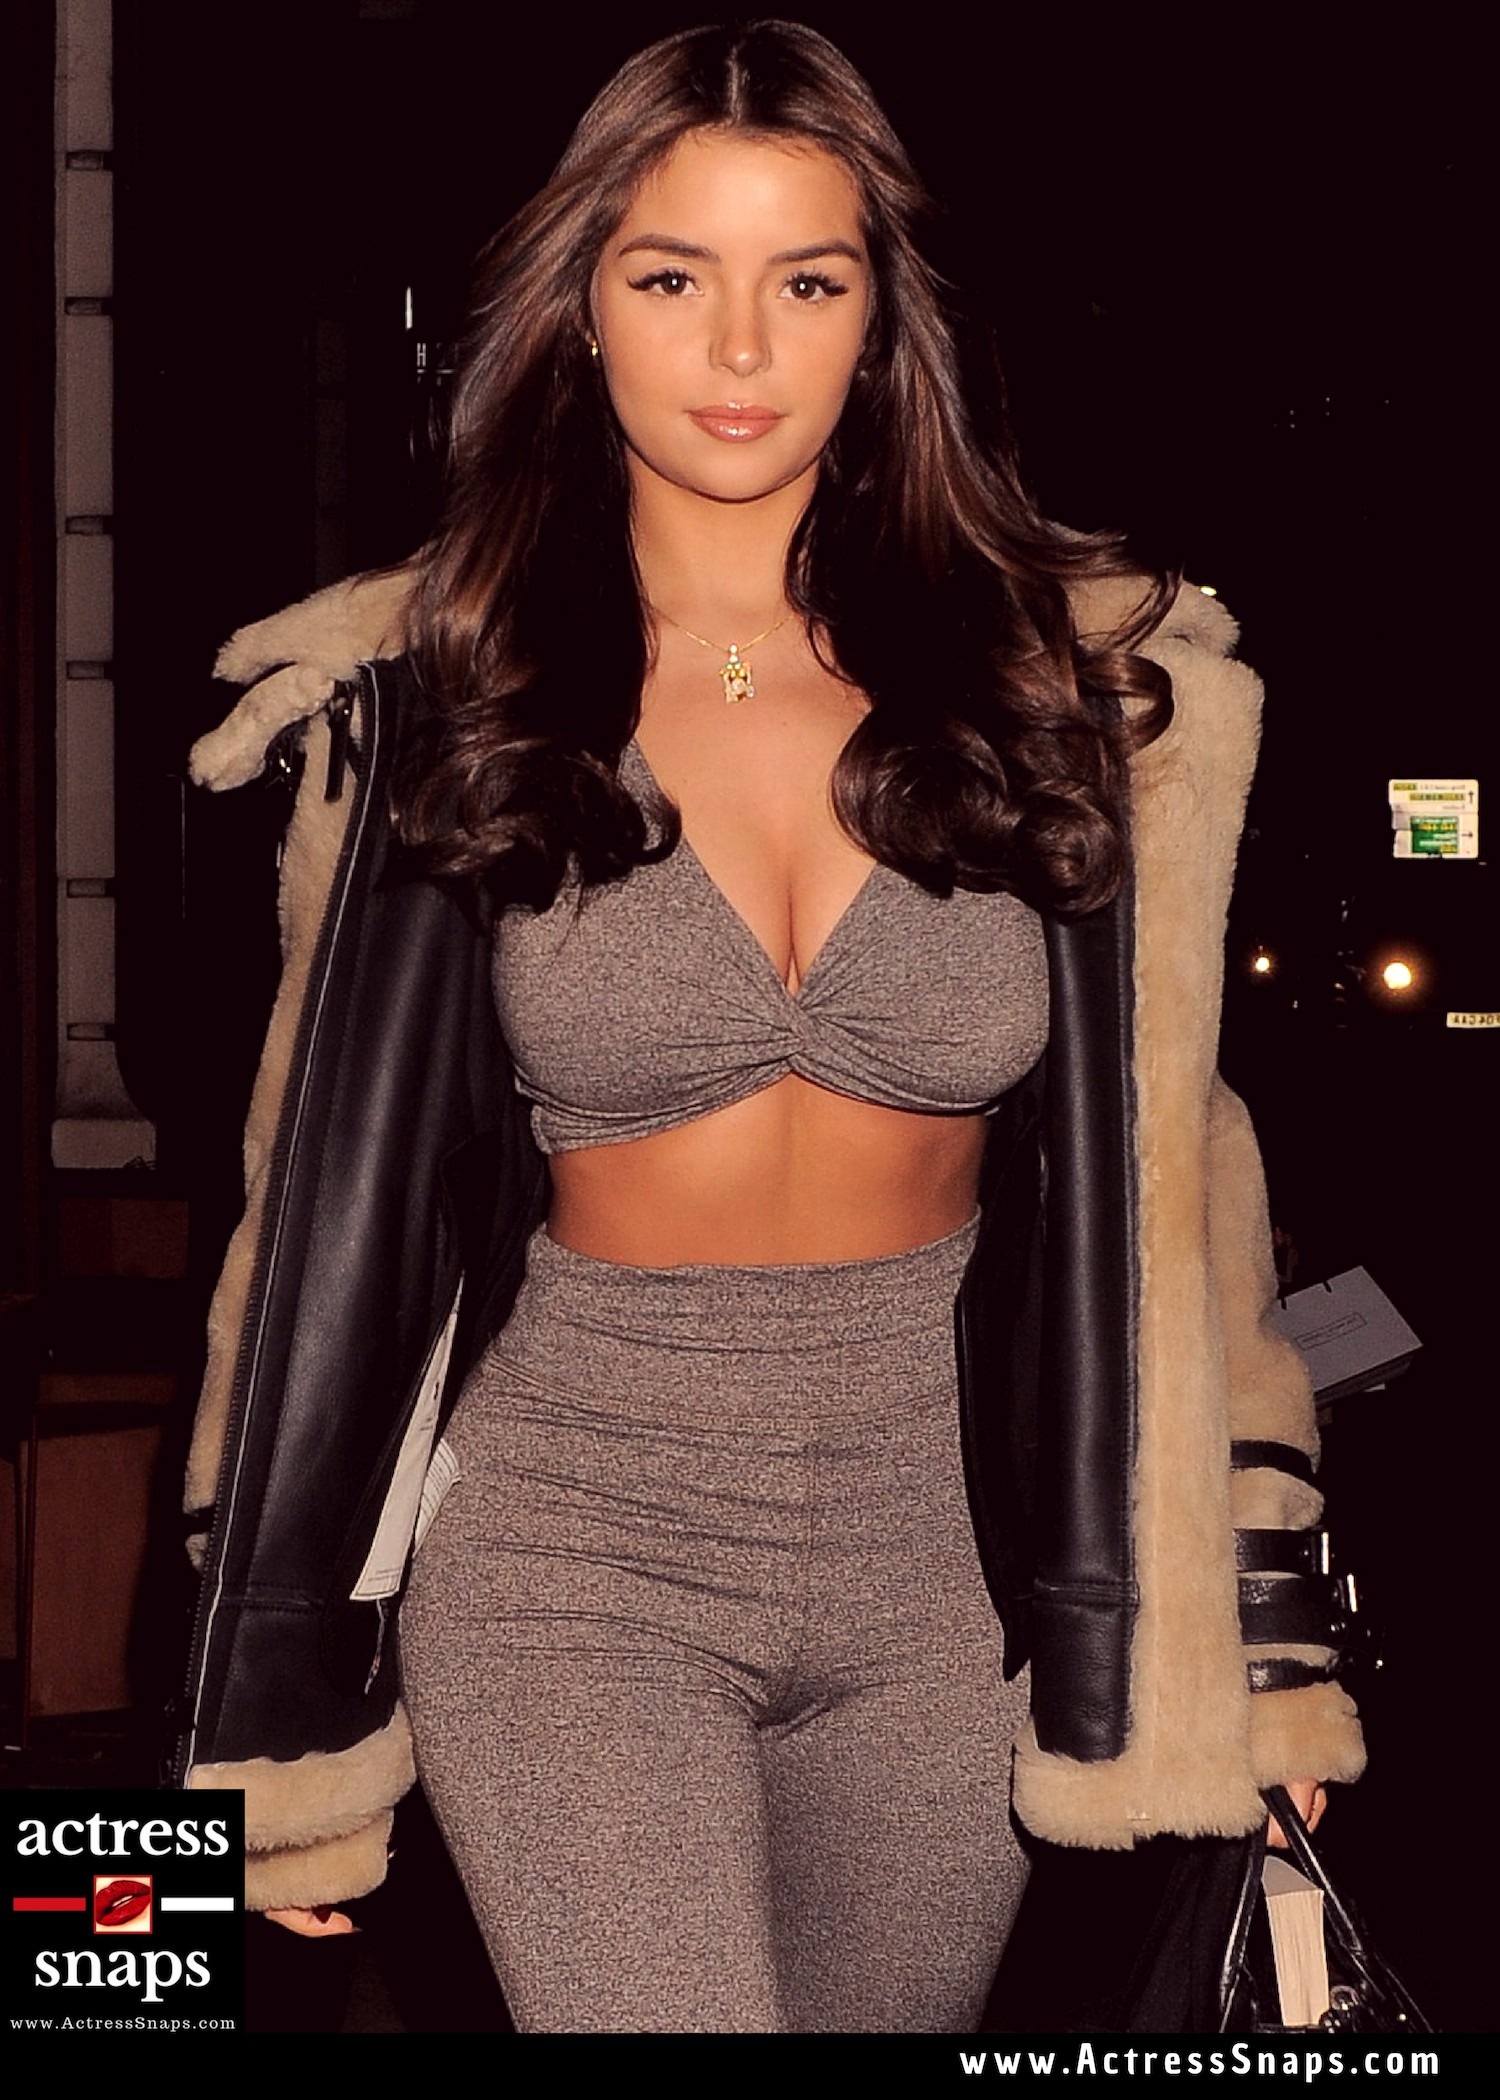 Latest Demi Rose Mawby Pictures - Sexy Actress Pictures | Hot Actress Pictures - ActressSnaps.com